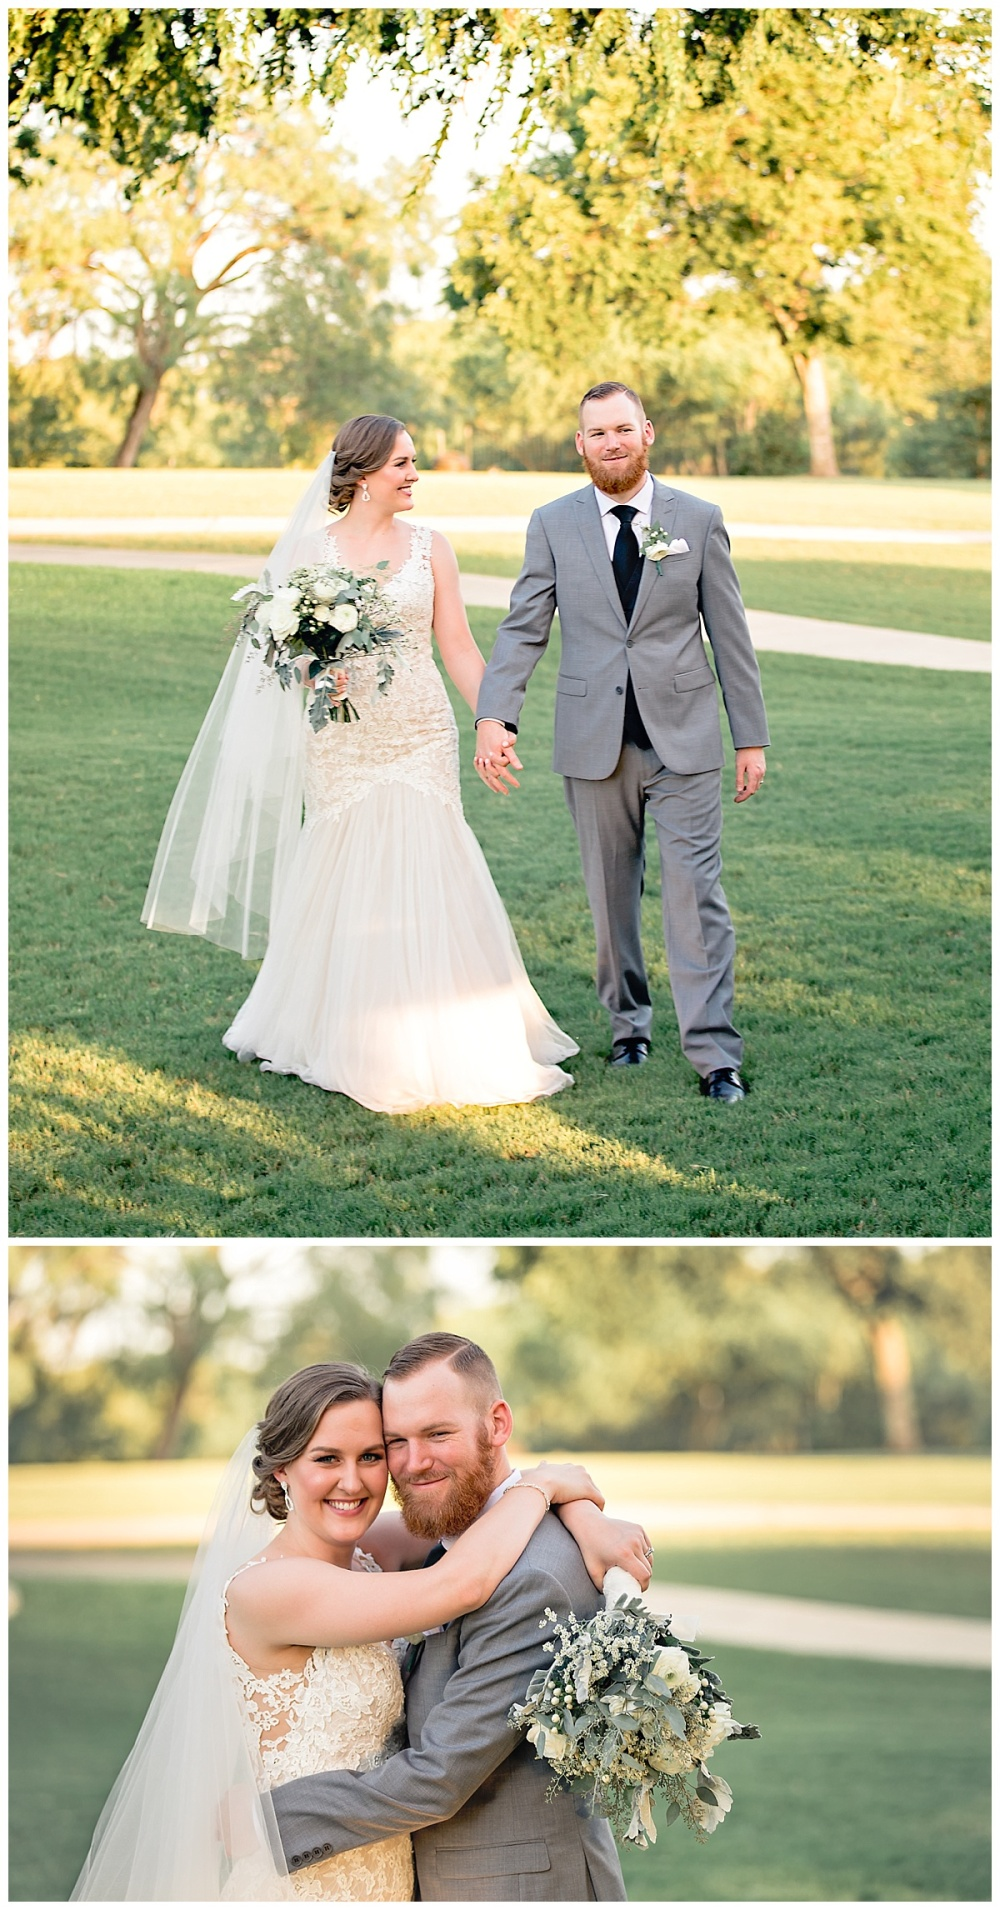 Carly-Barton-Photography-Wedding-Photos-Granberry-Hills-Event-Facility-Ryan-Chelsea-San-Antonio-Texas_0043